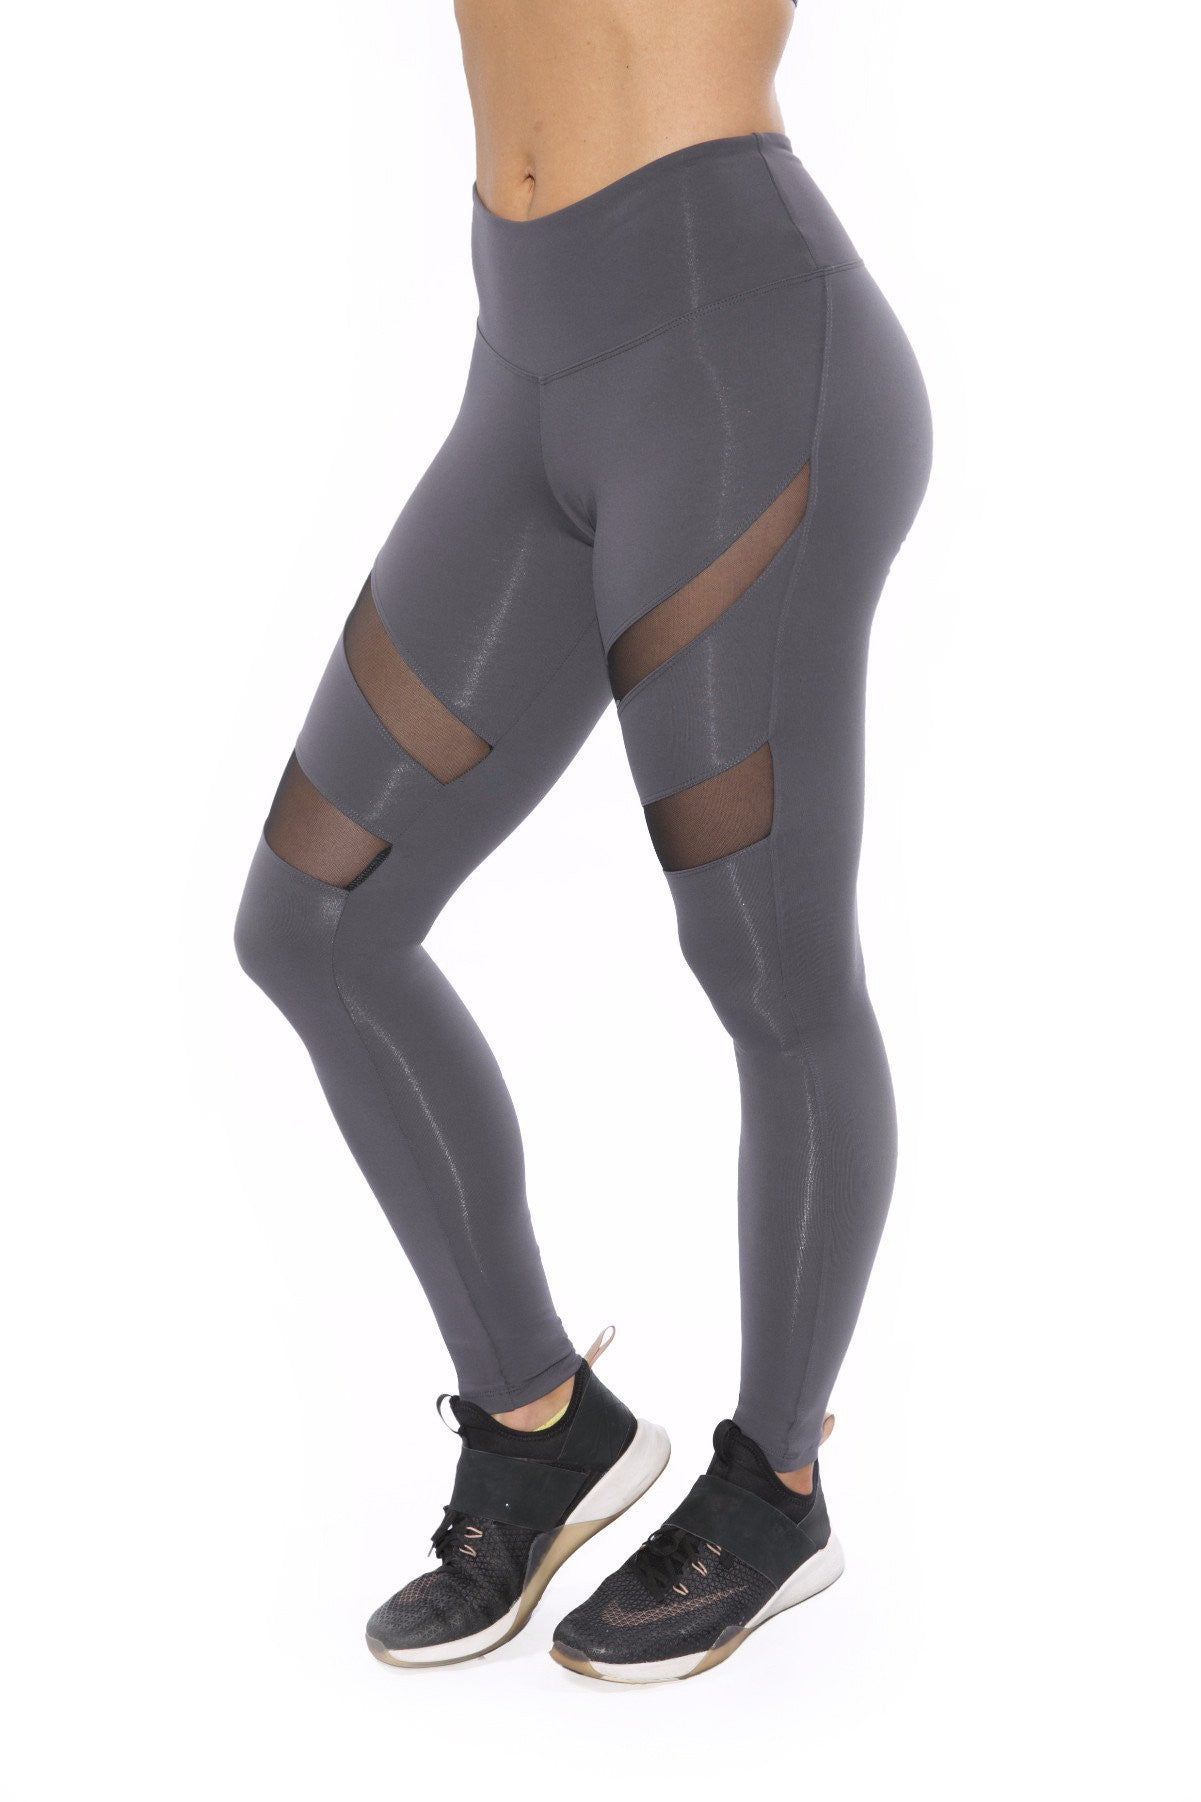 18014916a11ac HEATHER GREY MESH LEGGINGS – JFitness Active Wear